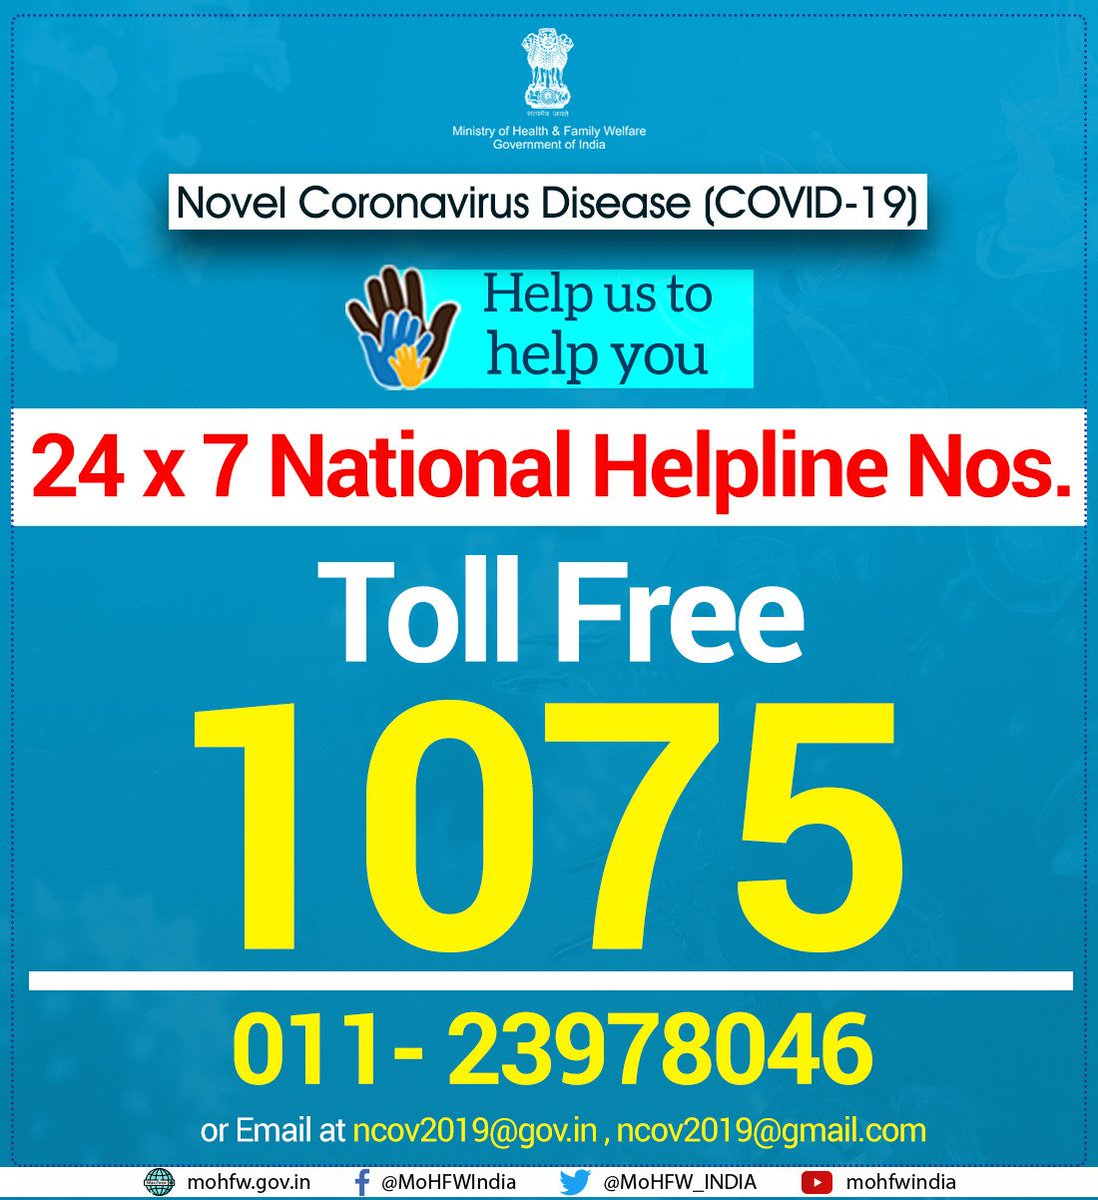 """Ministry of Railways on Twitter: """"Please call the 24x7 toll free National Helpline  number 1075 for support, guidance, and response to health related queries  on #COVID19. #IndiaFightsCorona #NoRailTravel… https://t.co/hRhJrFHRUE"""""""